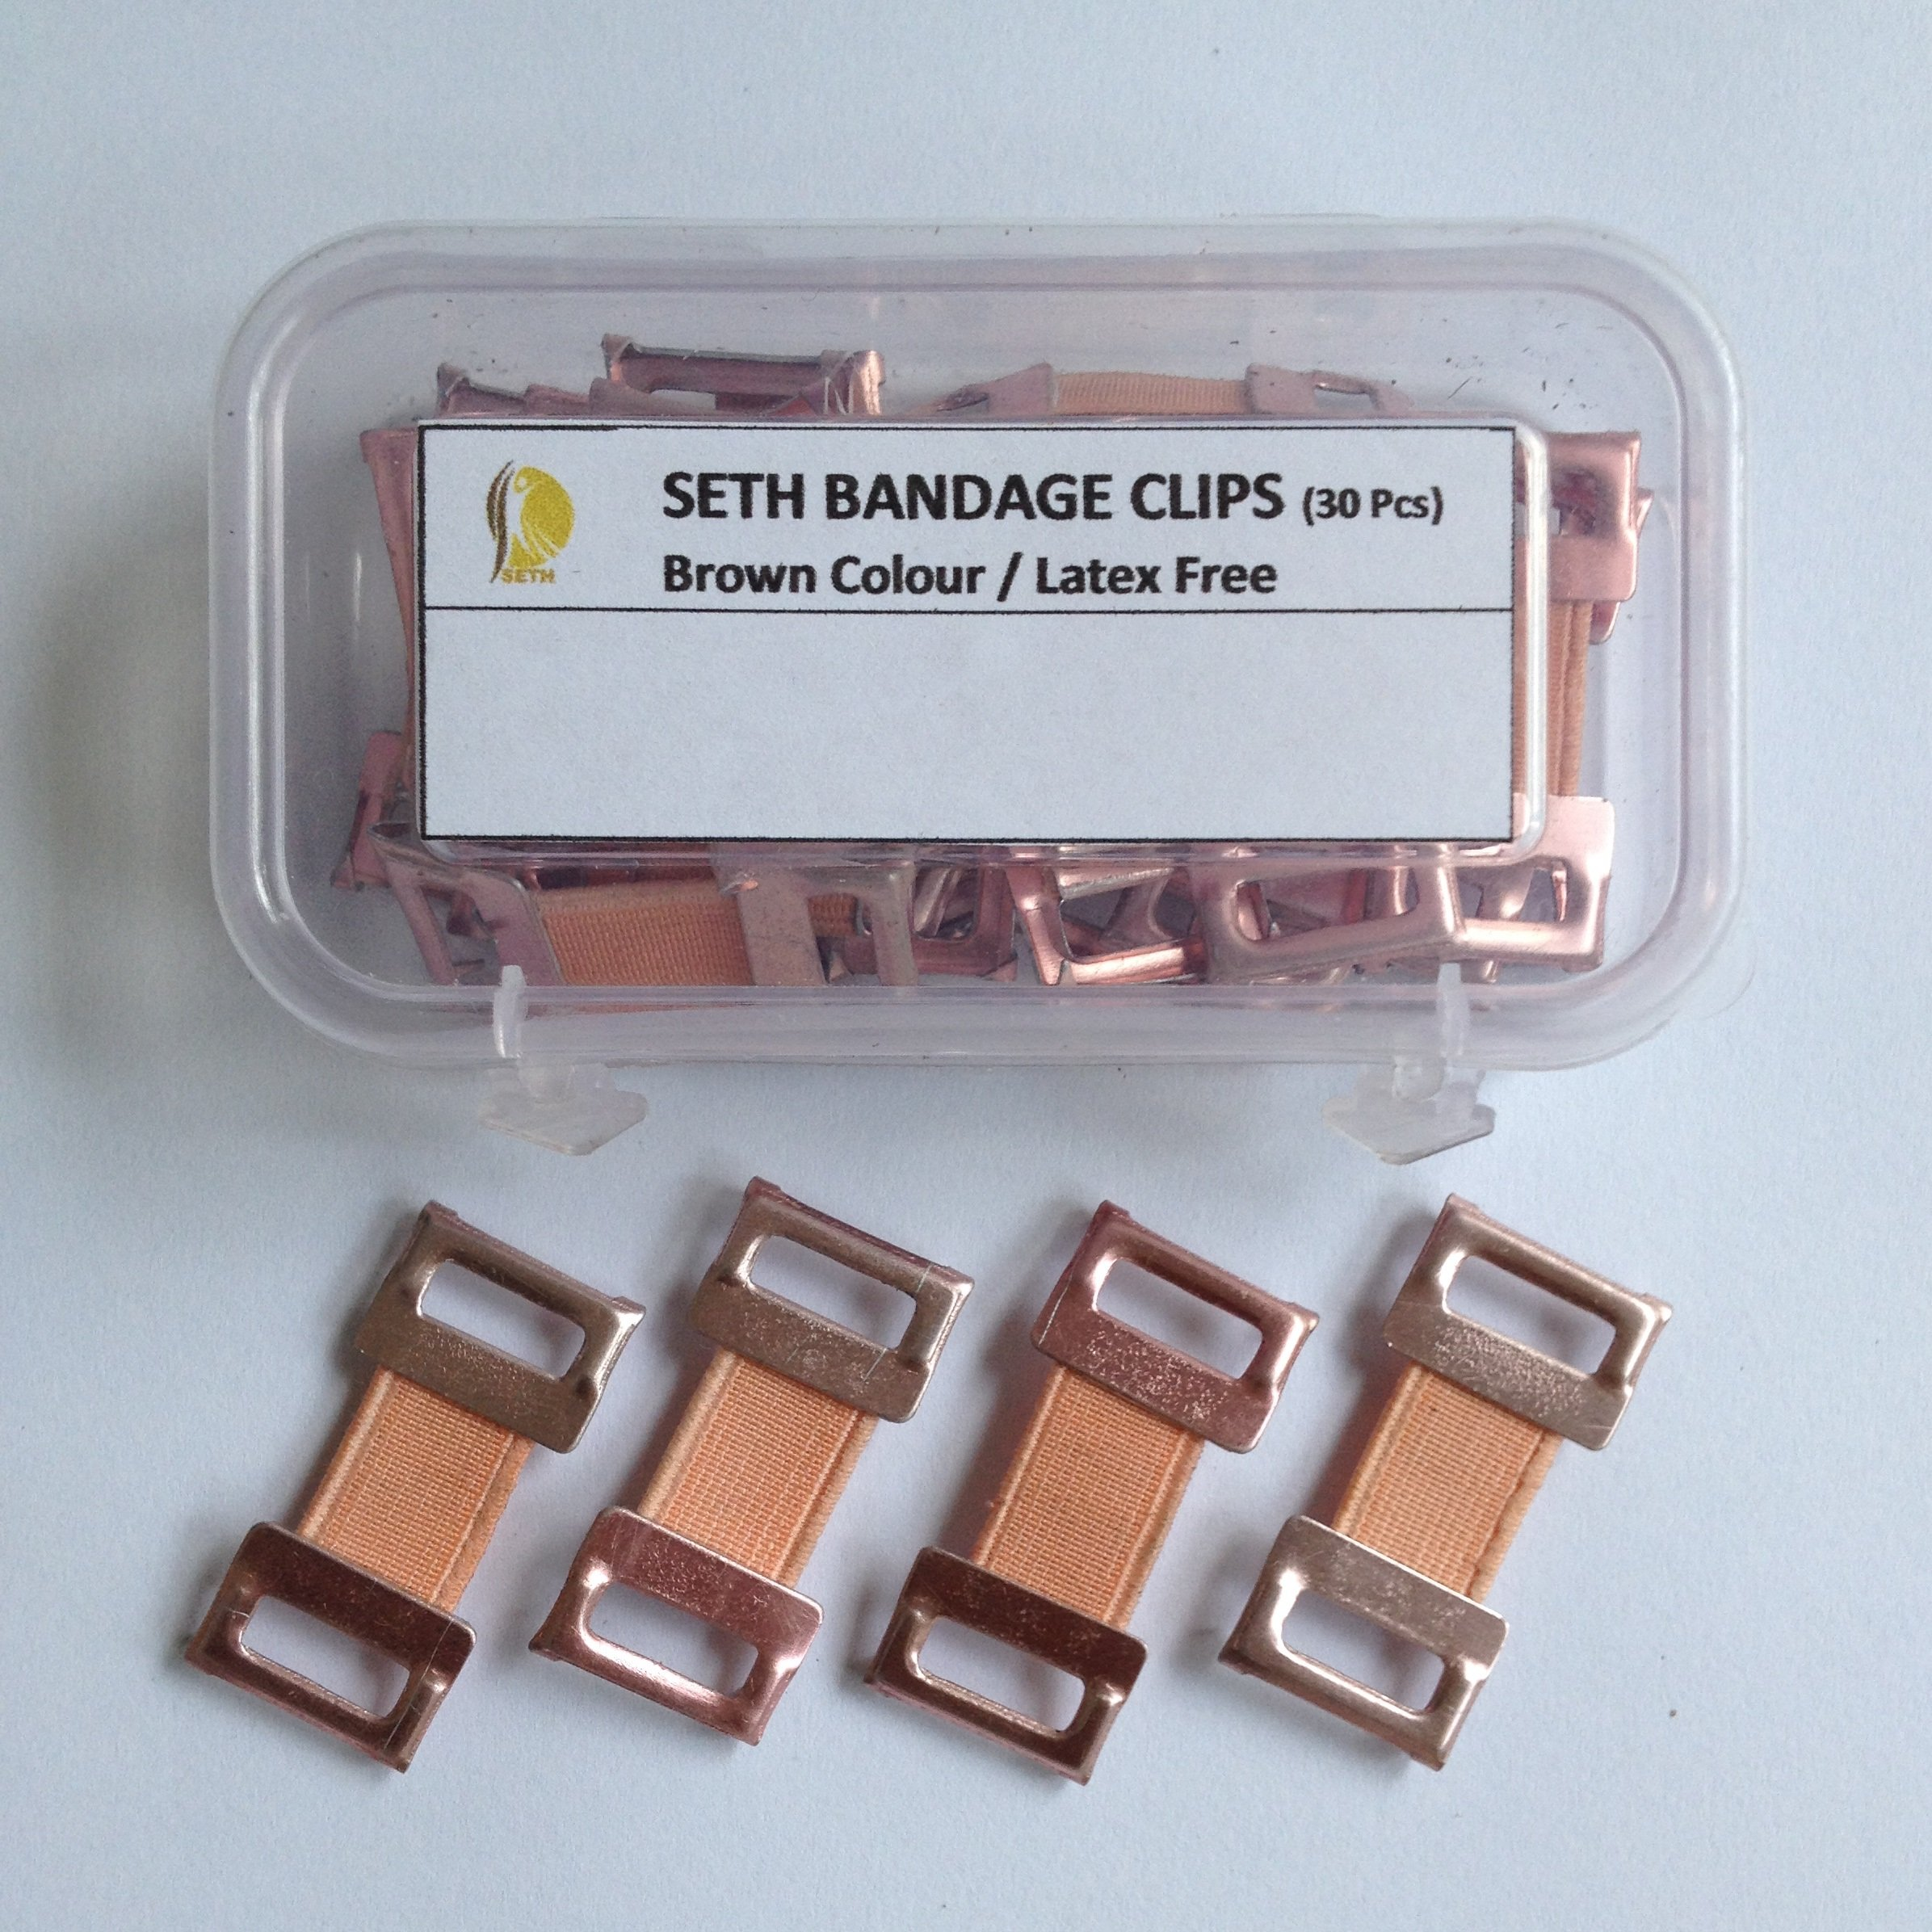 Seth-Premium Quality Replacement Elastic Bandage Clips for Elastic Bandages,Compression Bandages,Crepe Bandages,Cotton Bandages,Body Wrap Clips-Secure Elastic Fastener Clips (Pack of 30 Clips).